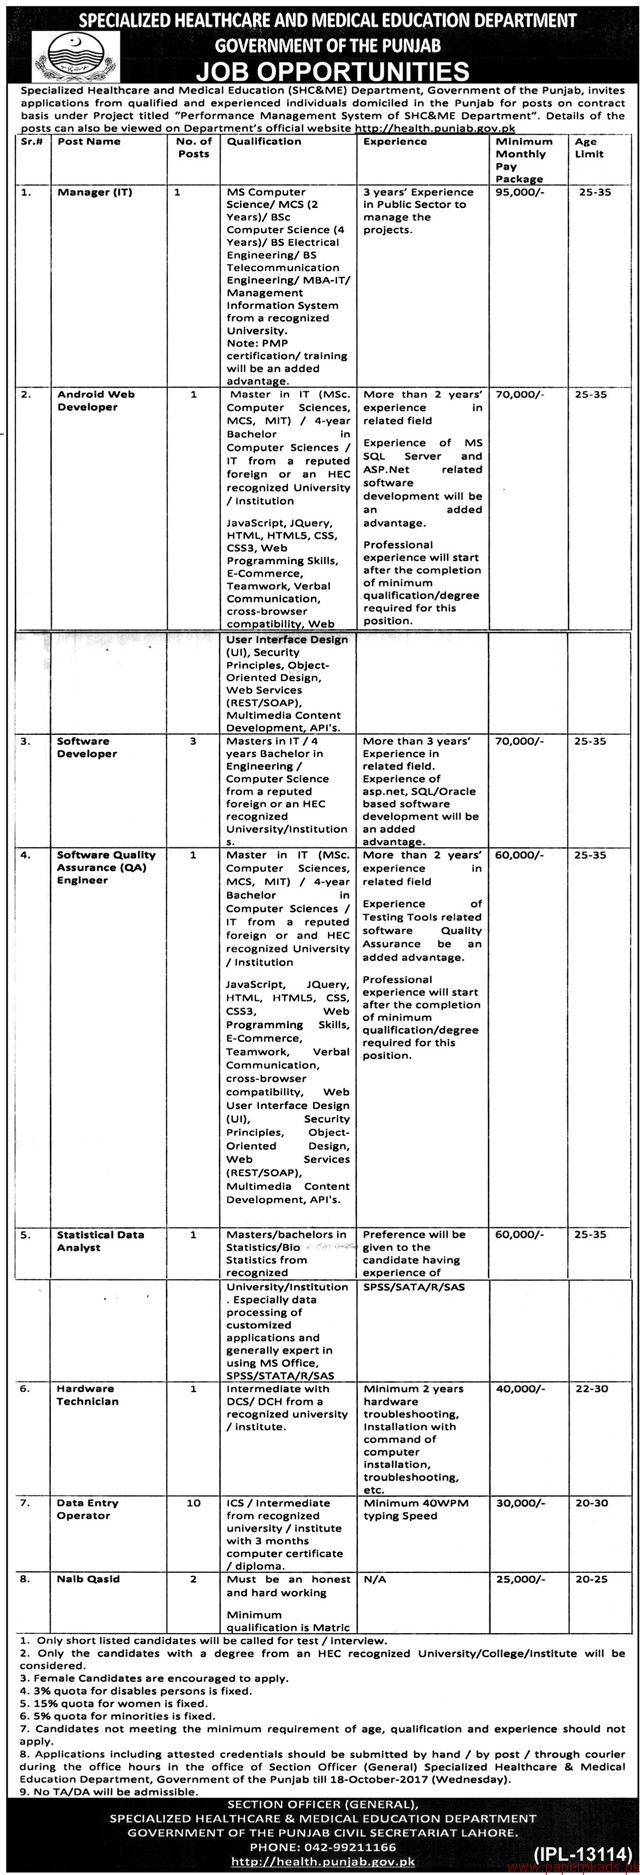 Specialized healthcare and Medical Education Department Jobs 2017